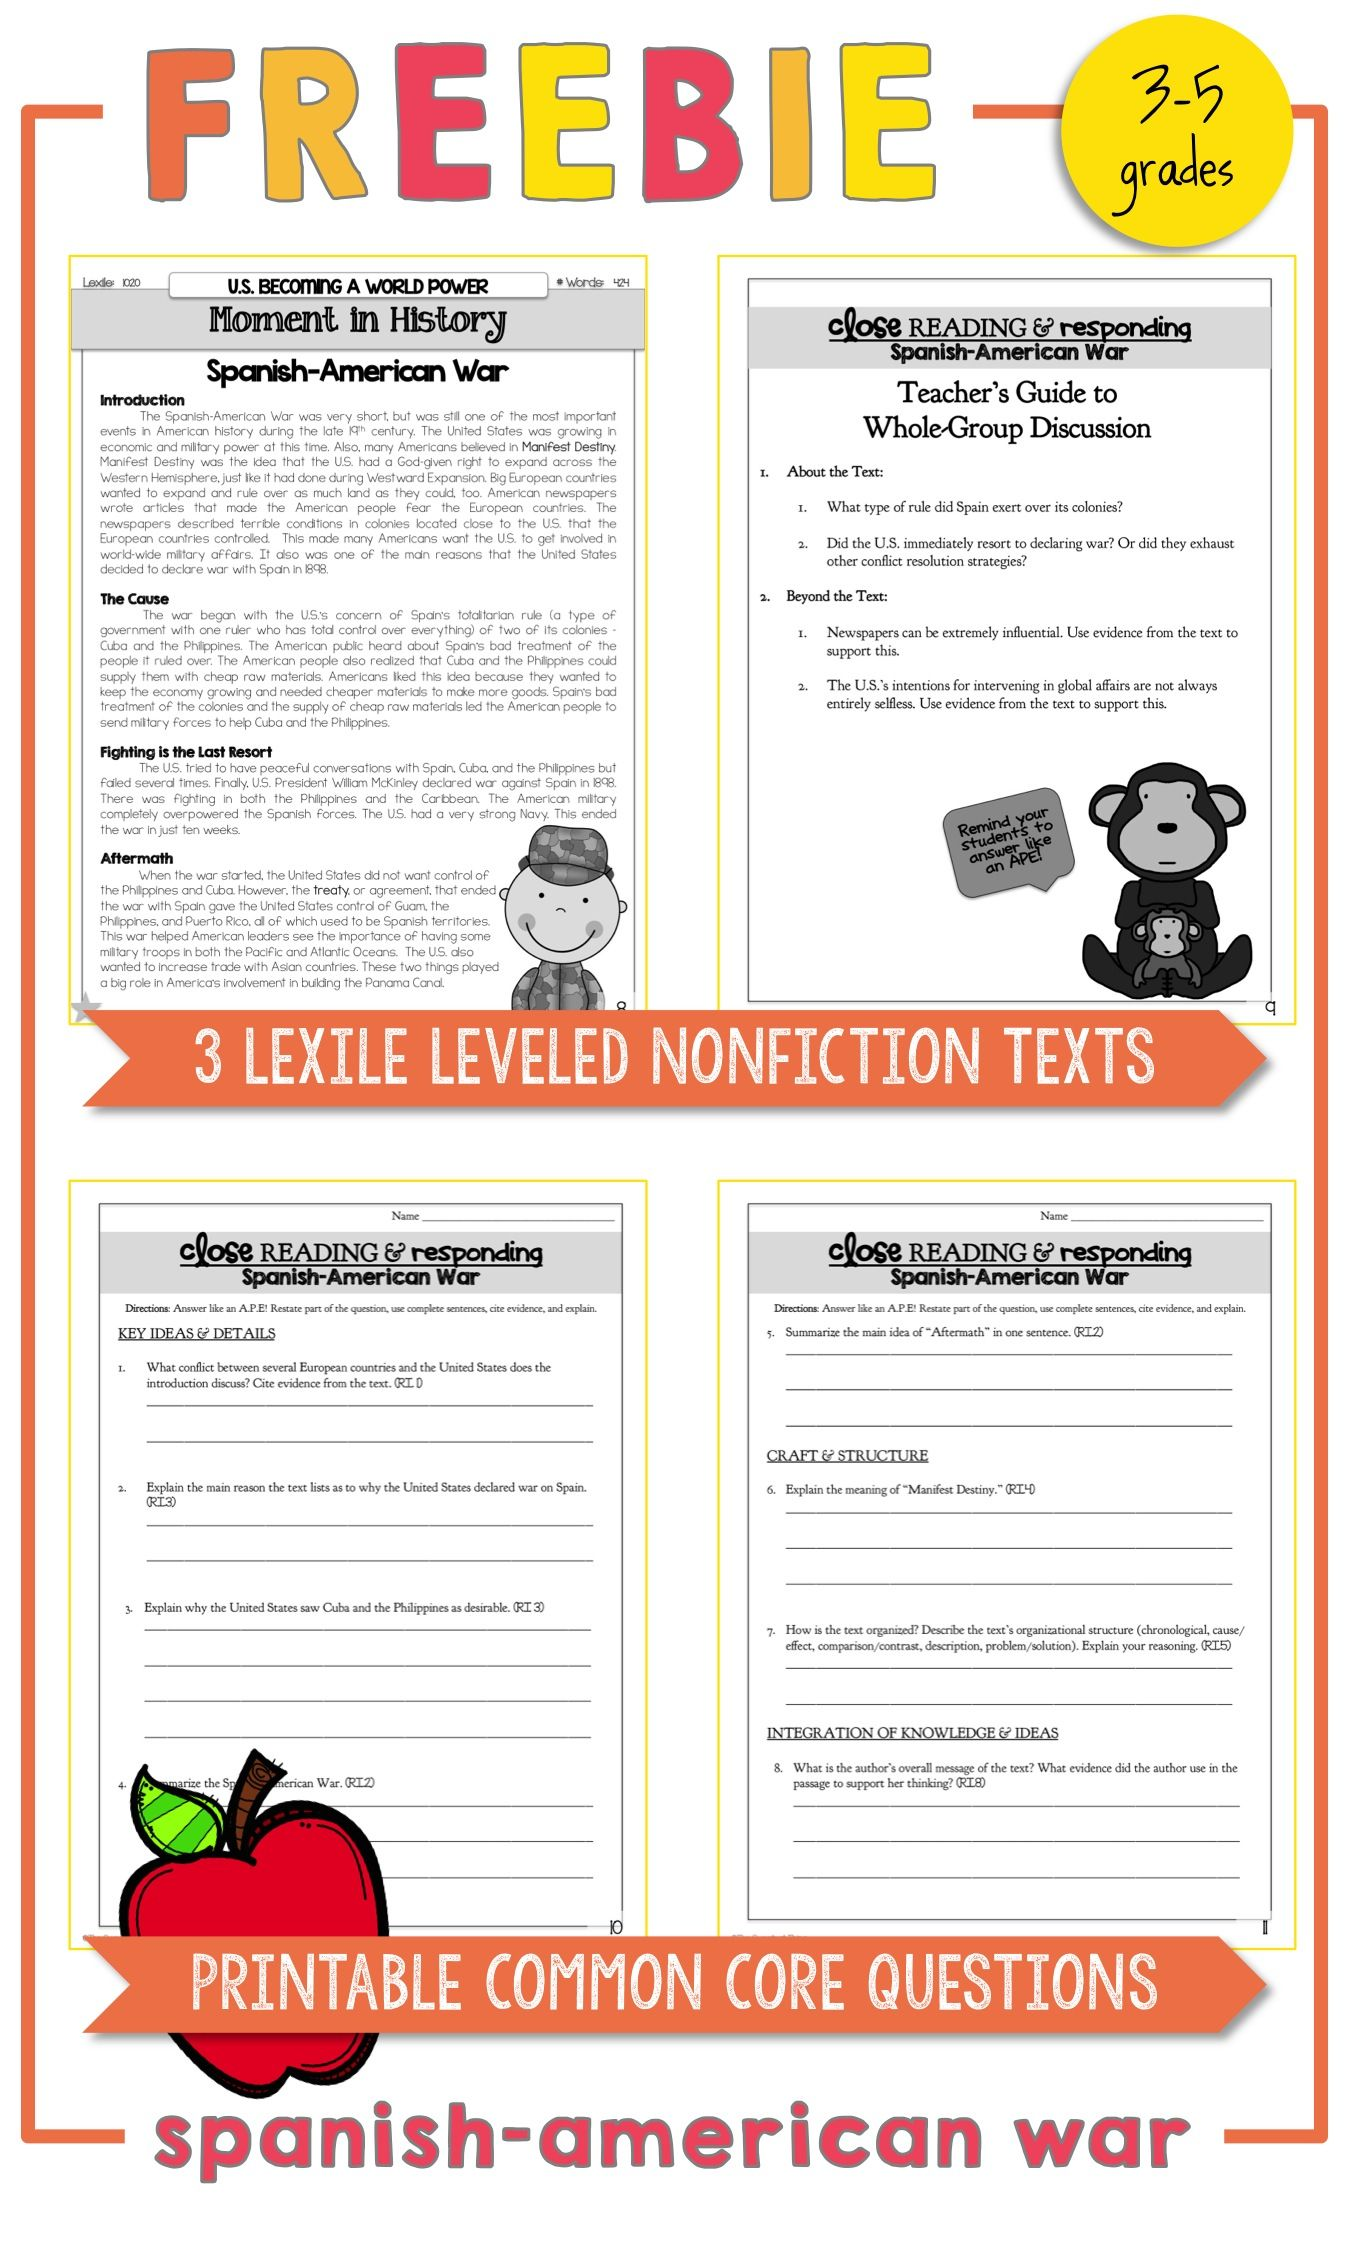 Free Spanish American War Lexile Leveled Nonfiction Texts